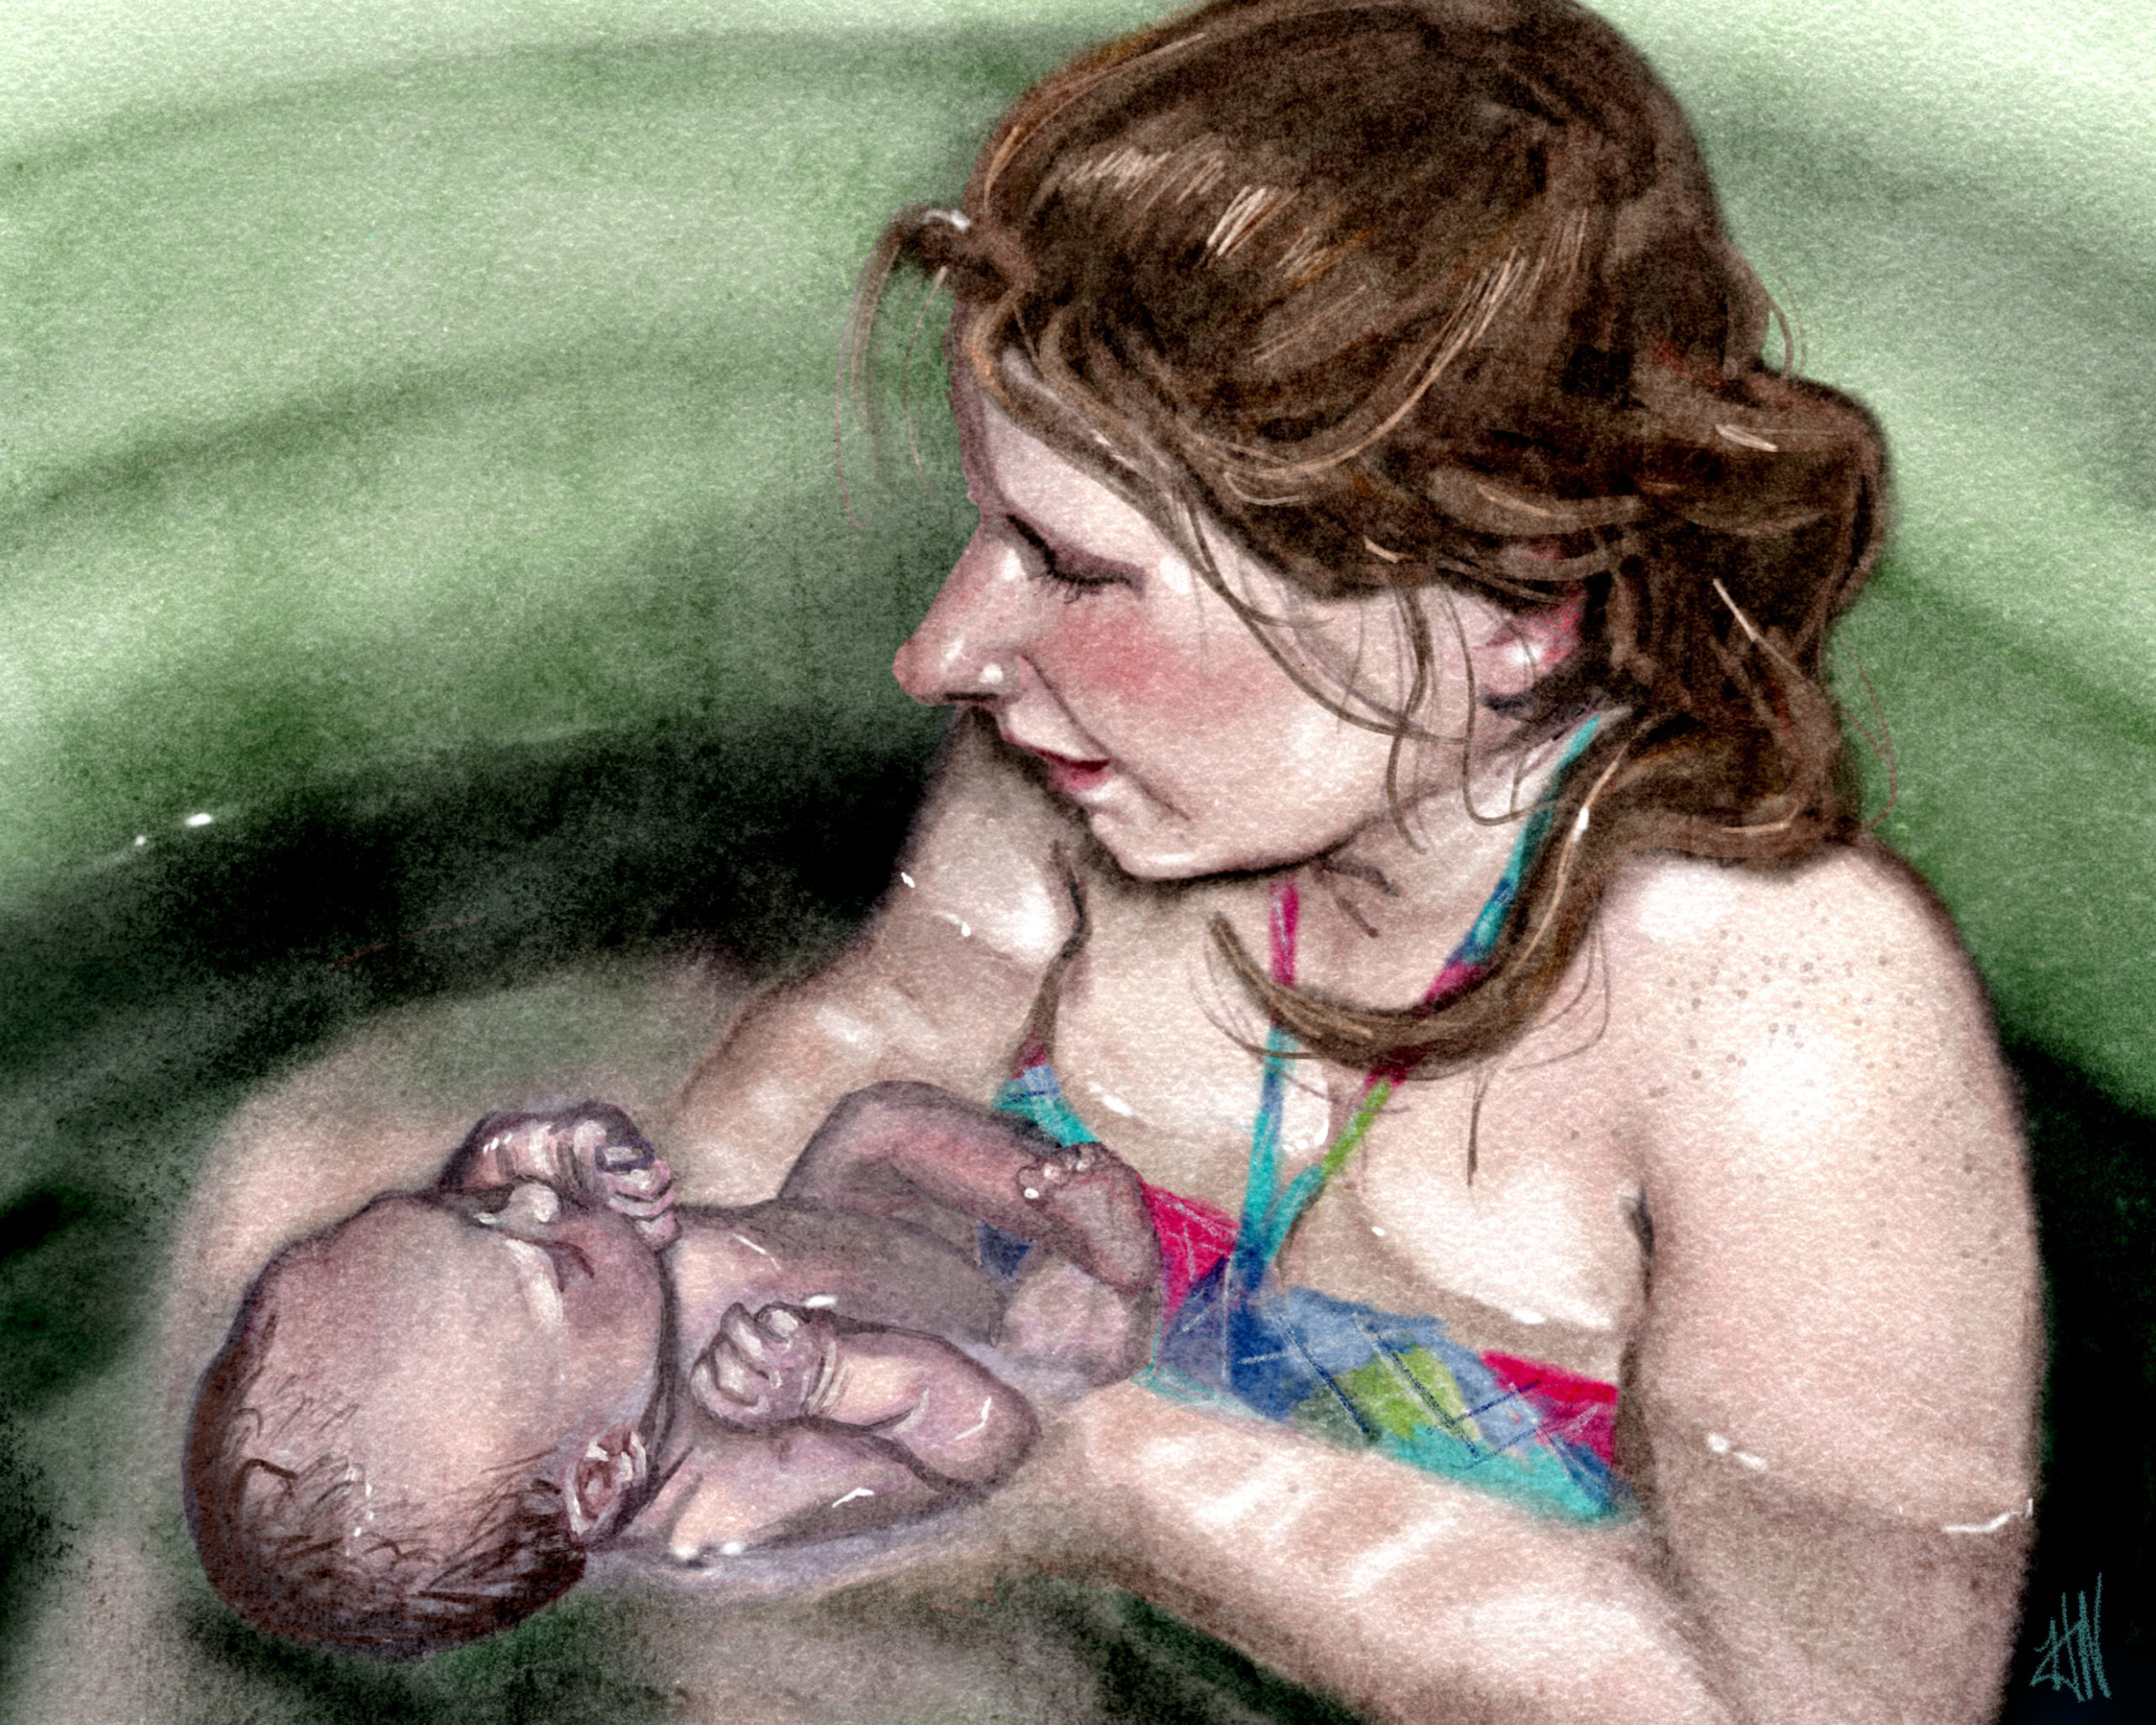 Digital art painting of mother and baby in pool